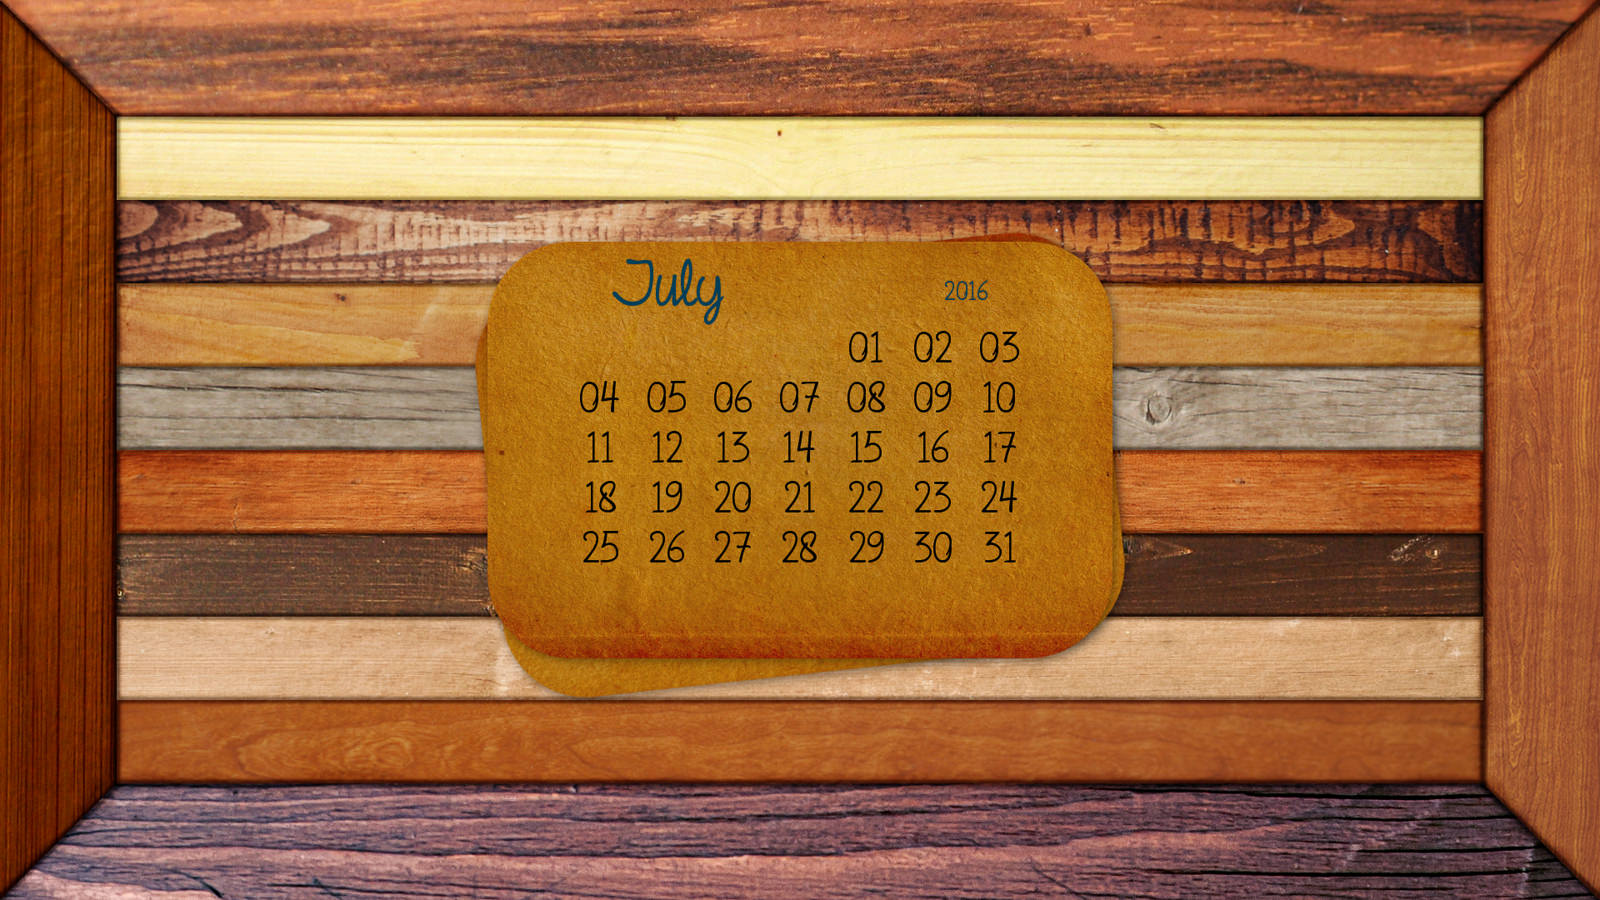 https-flic-kr-p-JzW-July-DeskCal-July-Desktop-Calendar-Using-the-clone-tool-dif-wallpaper-wpc9006294